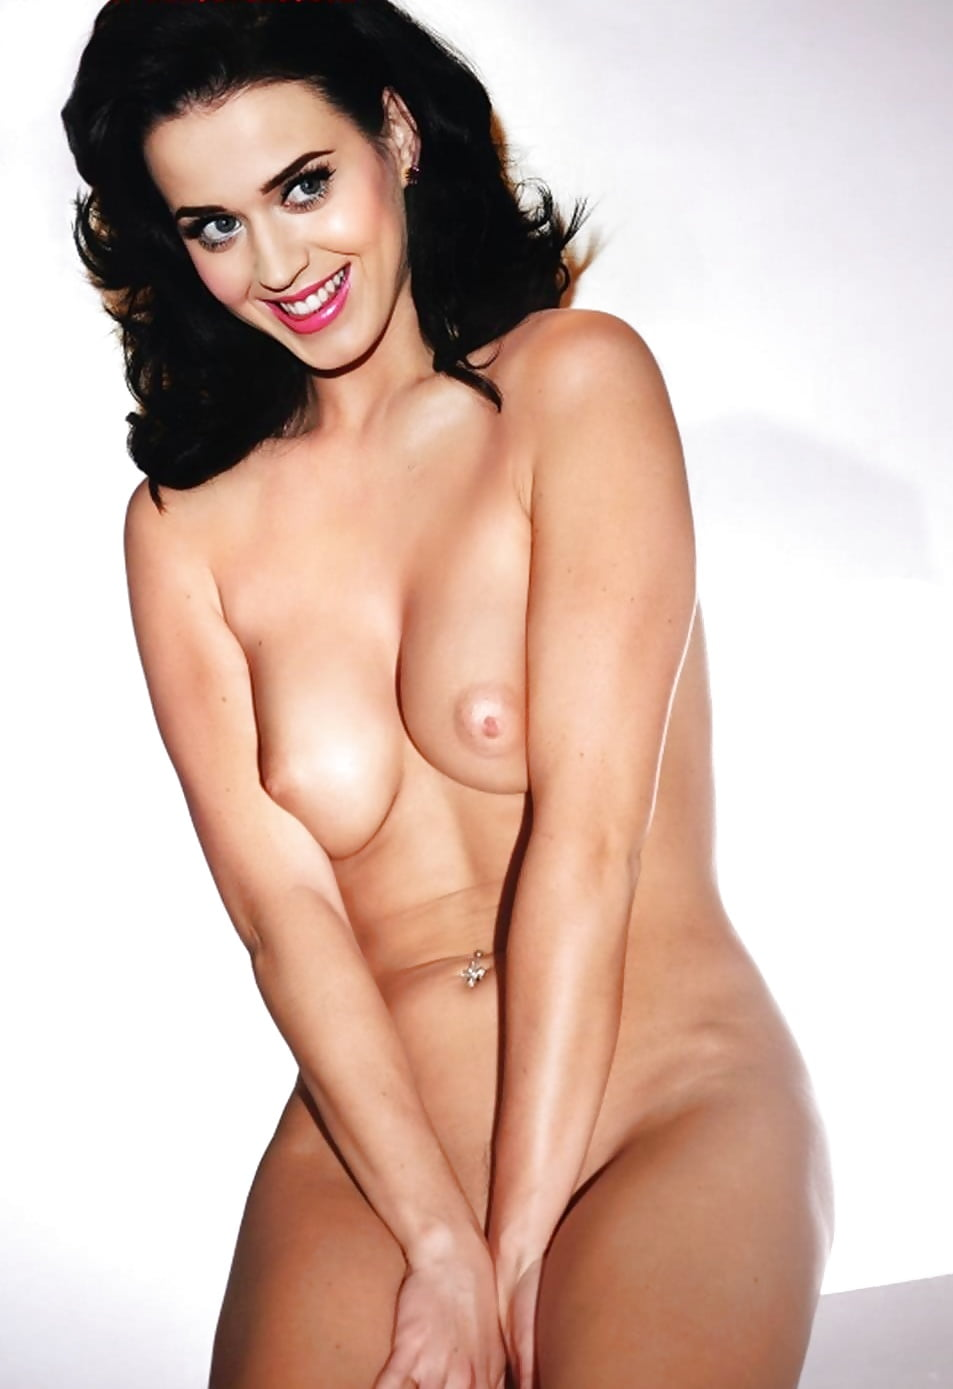 Katy perry totally naked pictures — photo 9